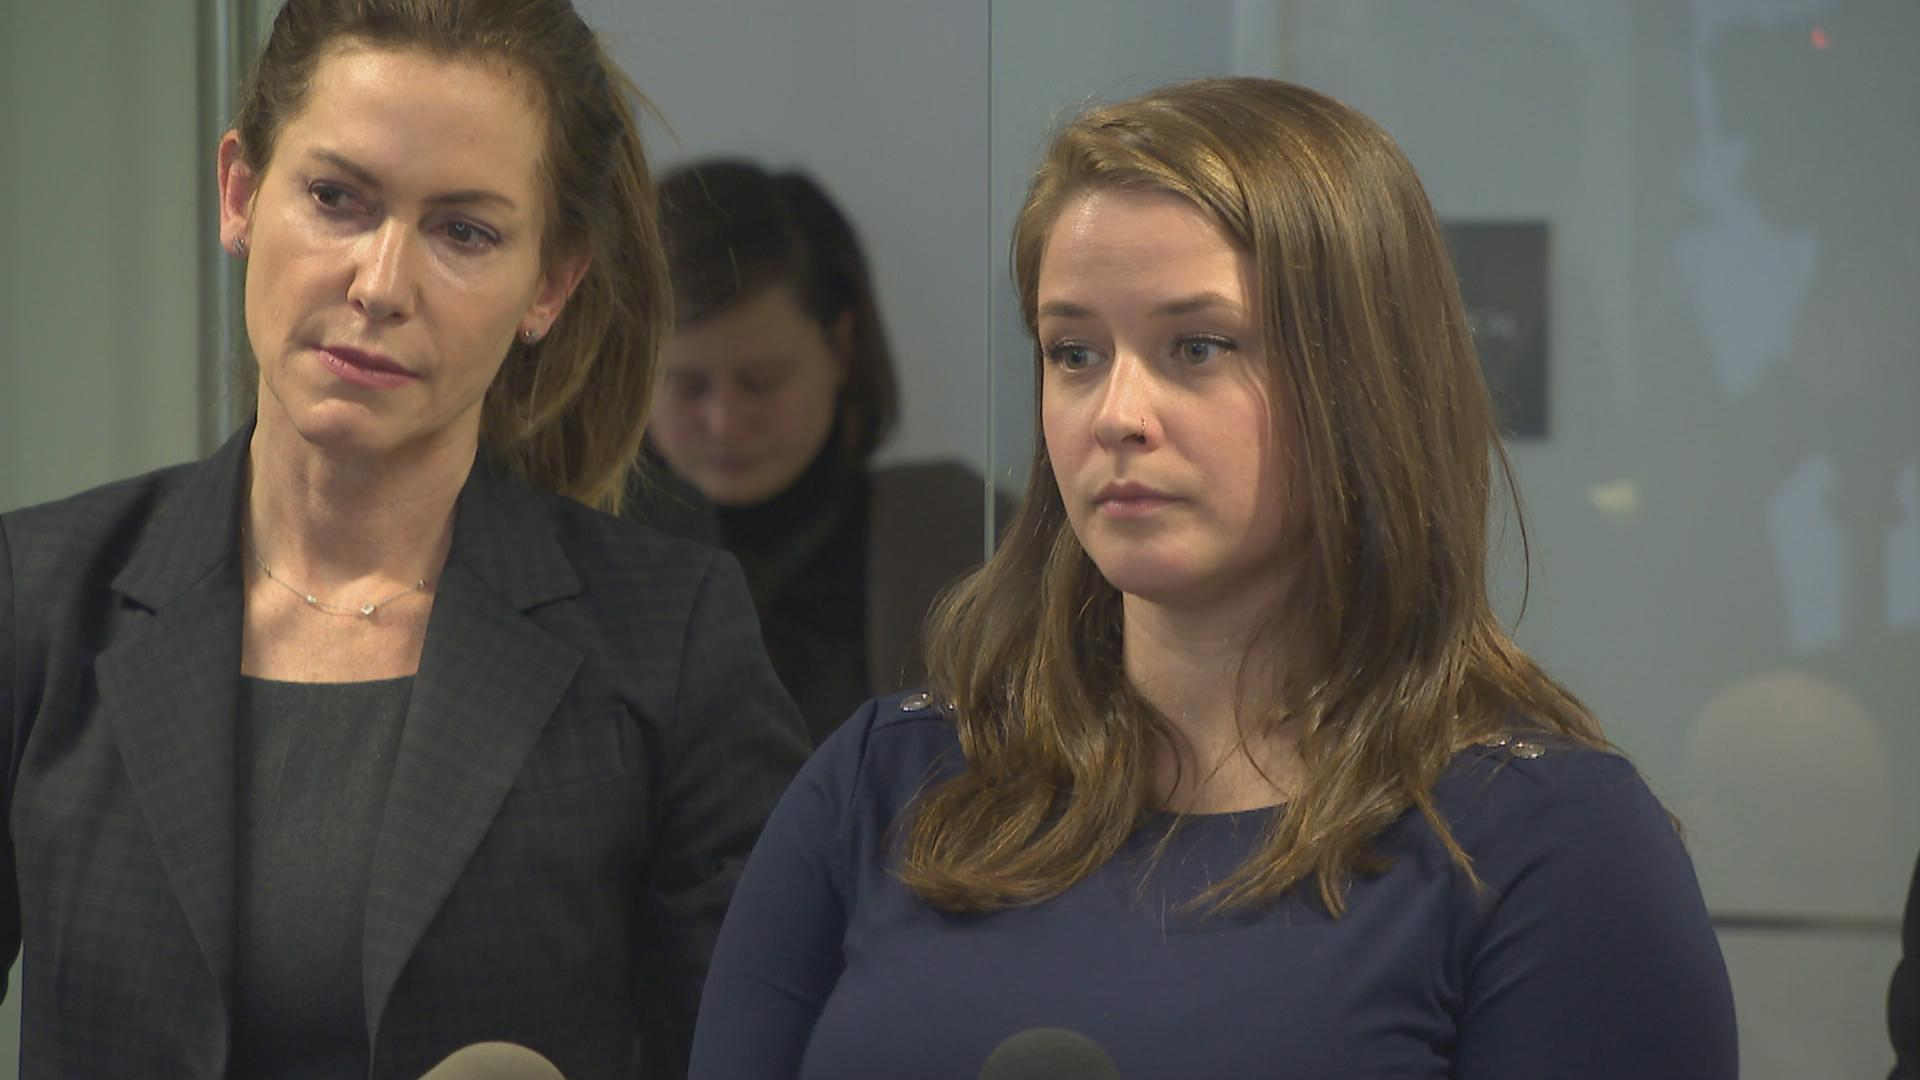 Alaina Hampton, right, speaks with reporters about her sexual harassment complaint in this file photo from 2018.